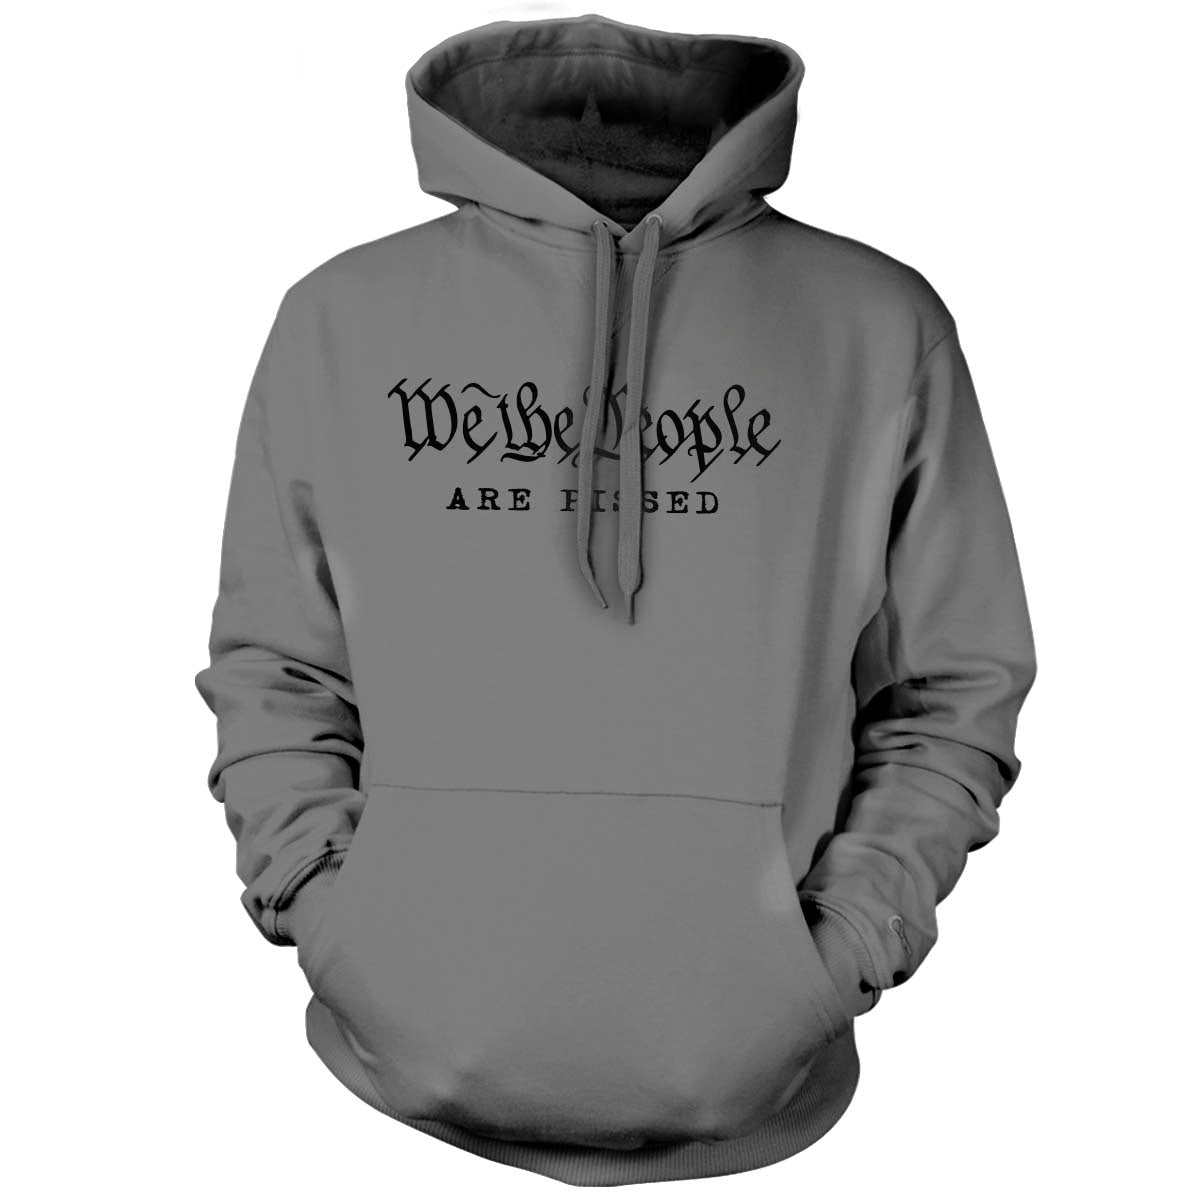 We The People Are Pissed - Hoodie - Grey - Hoodies - Pipe Hitters Union